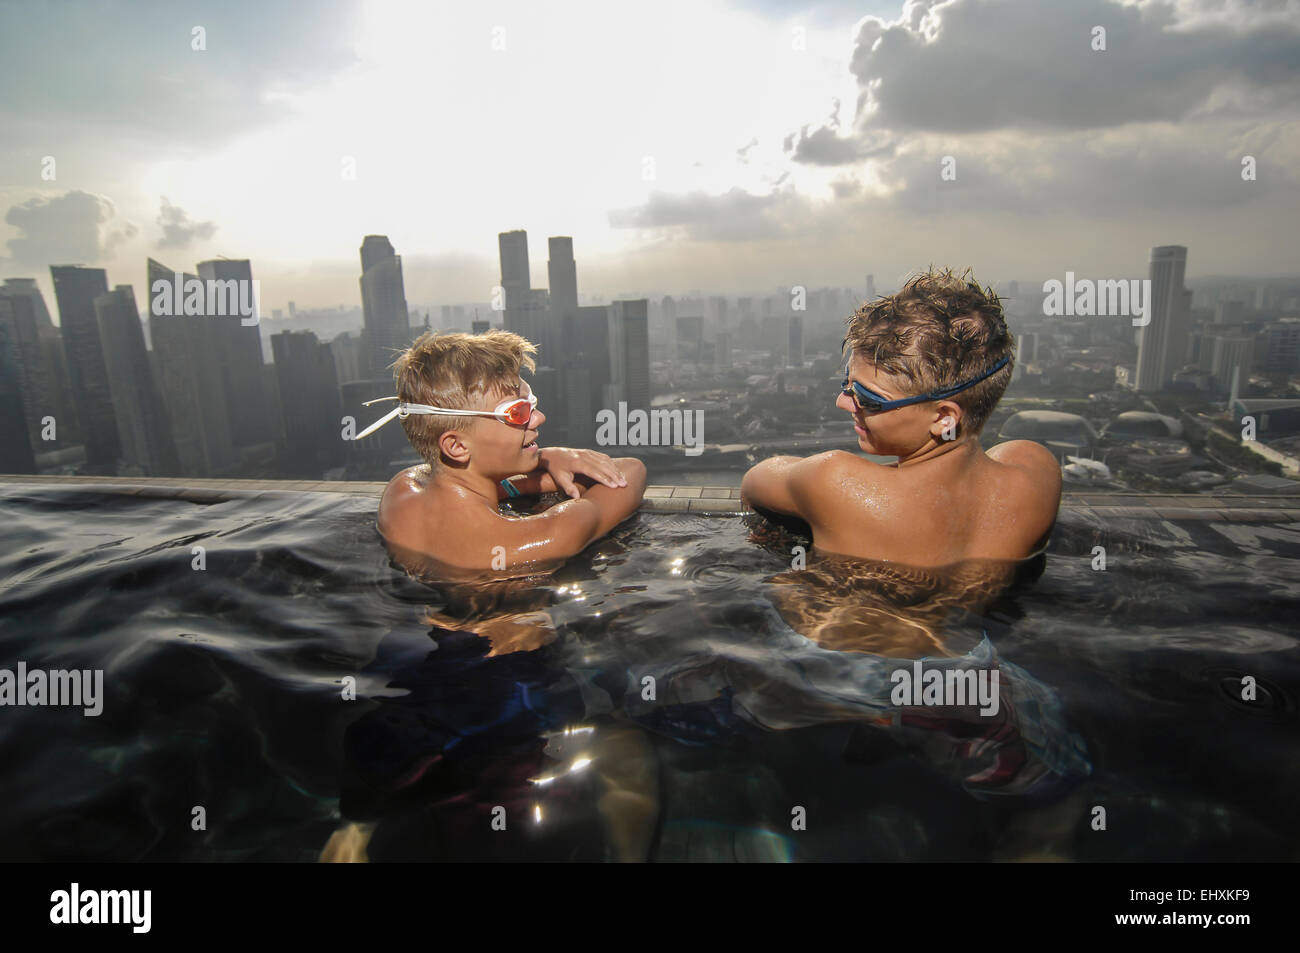 Teenage boys in an infinity pool, Marina Bay Sands, Singapore City, Singapore - Stock Image